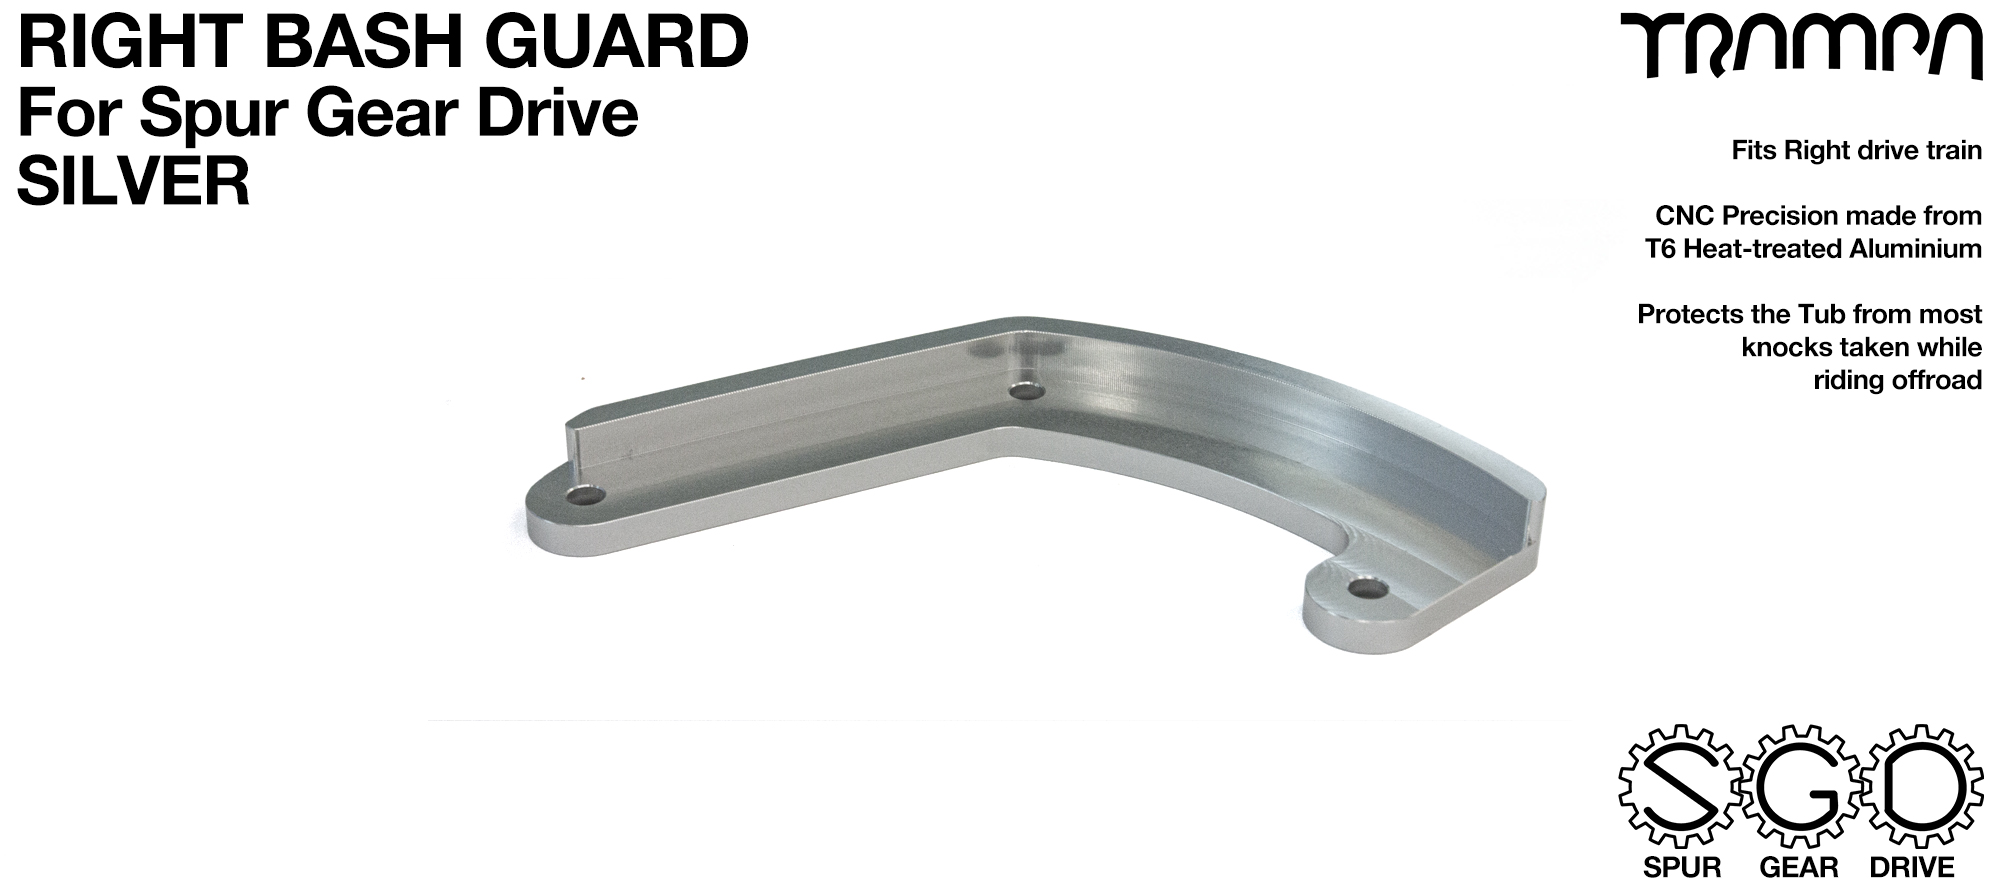 Spur Gear Drive Bash Guard - RIGHT Side